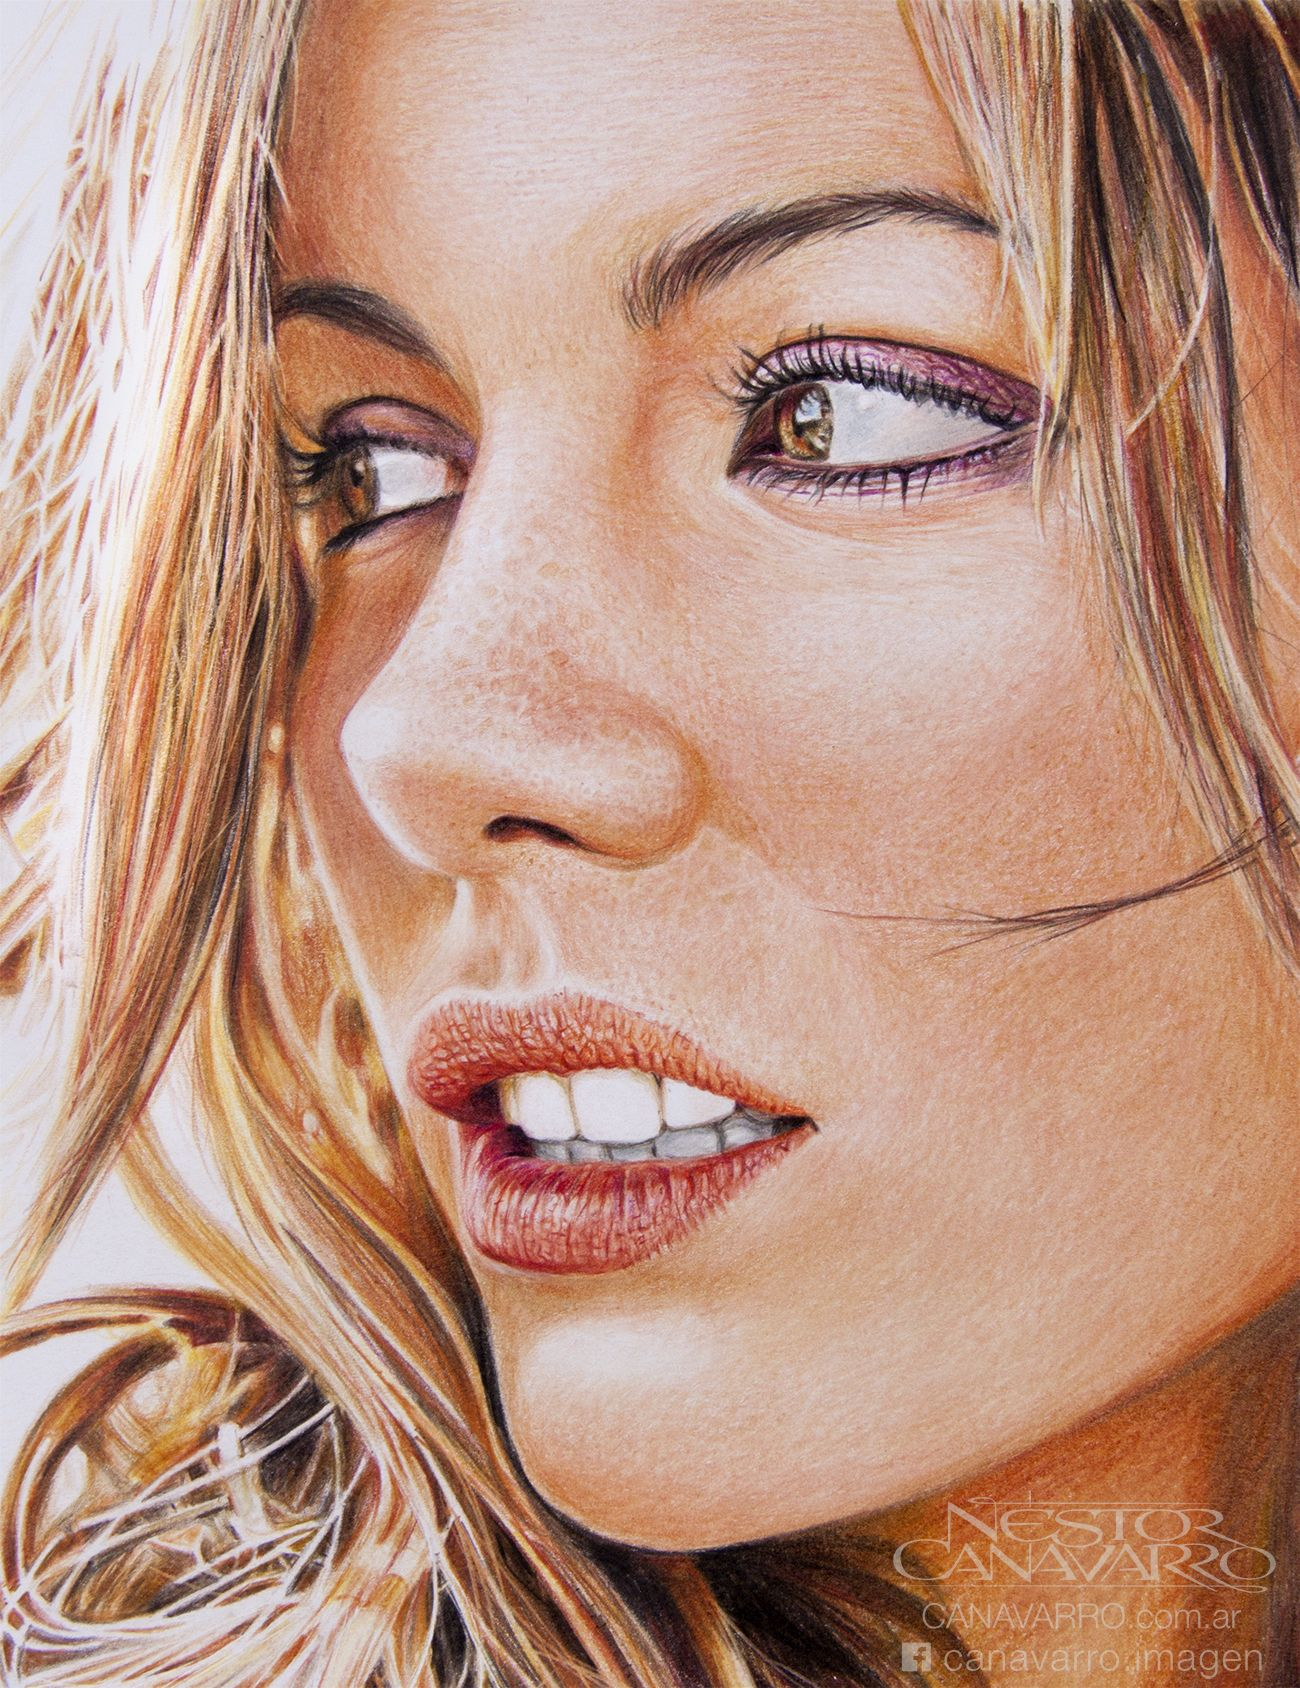 Hyper Realistic Pencil Drawings By Néstor Canavarro Art